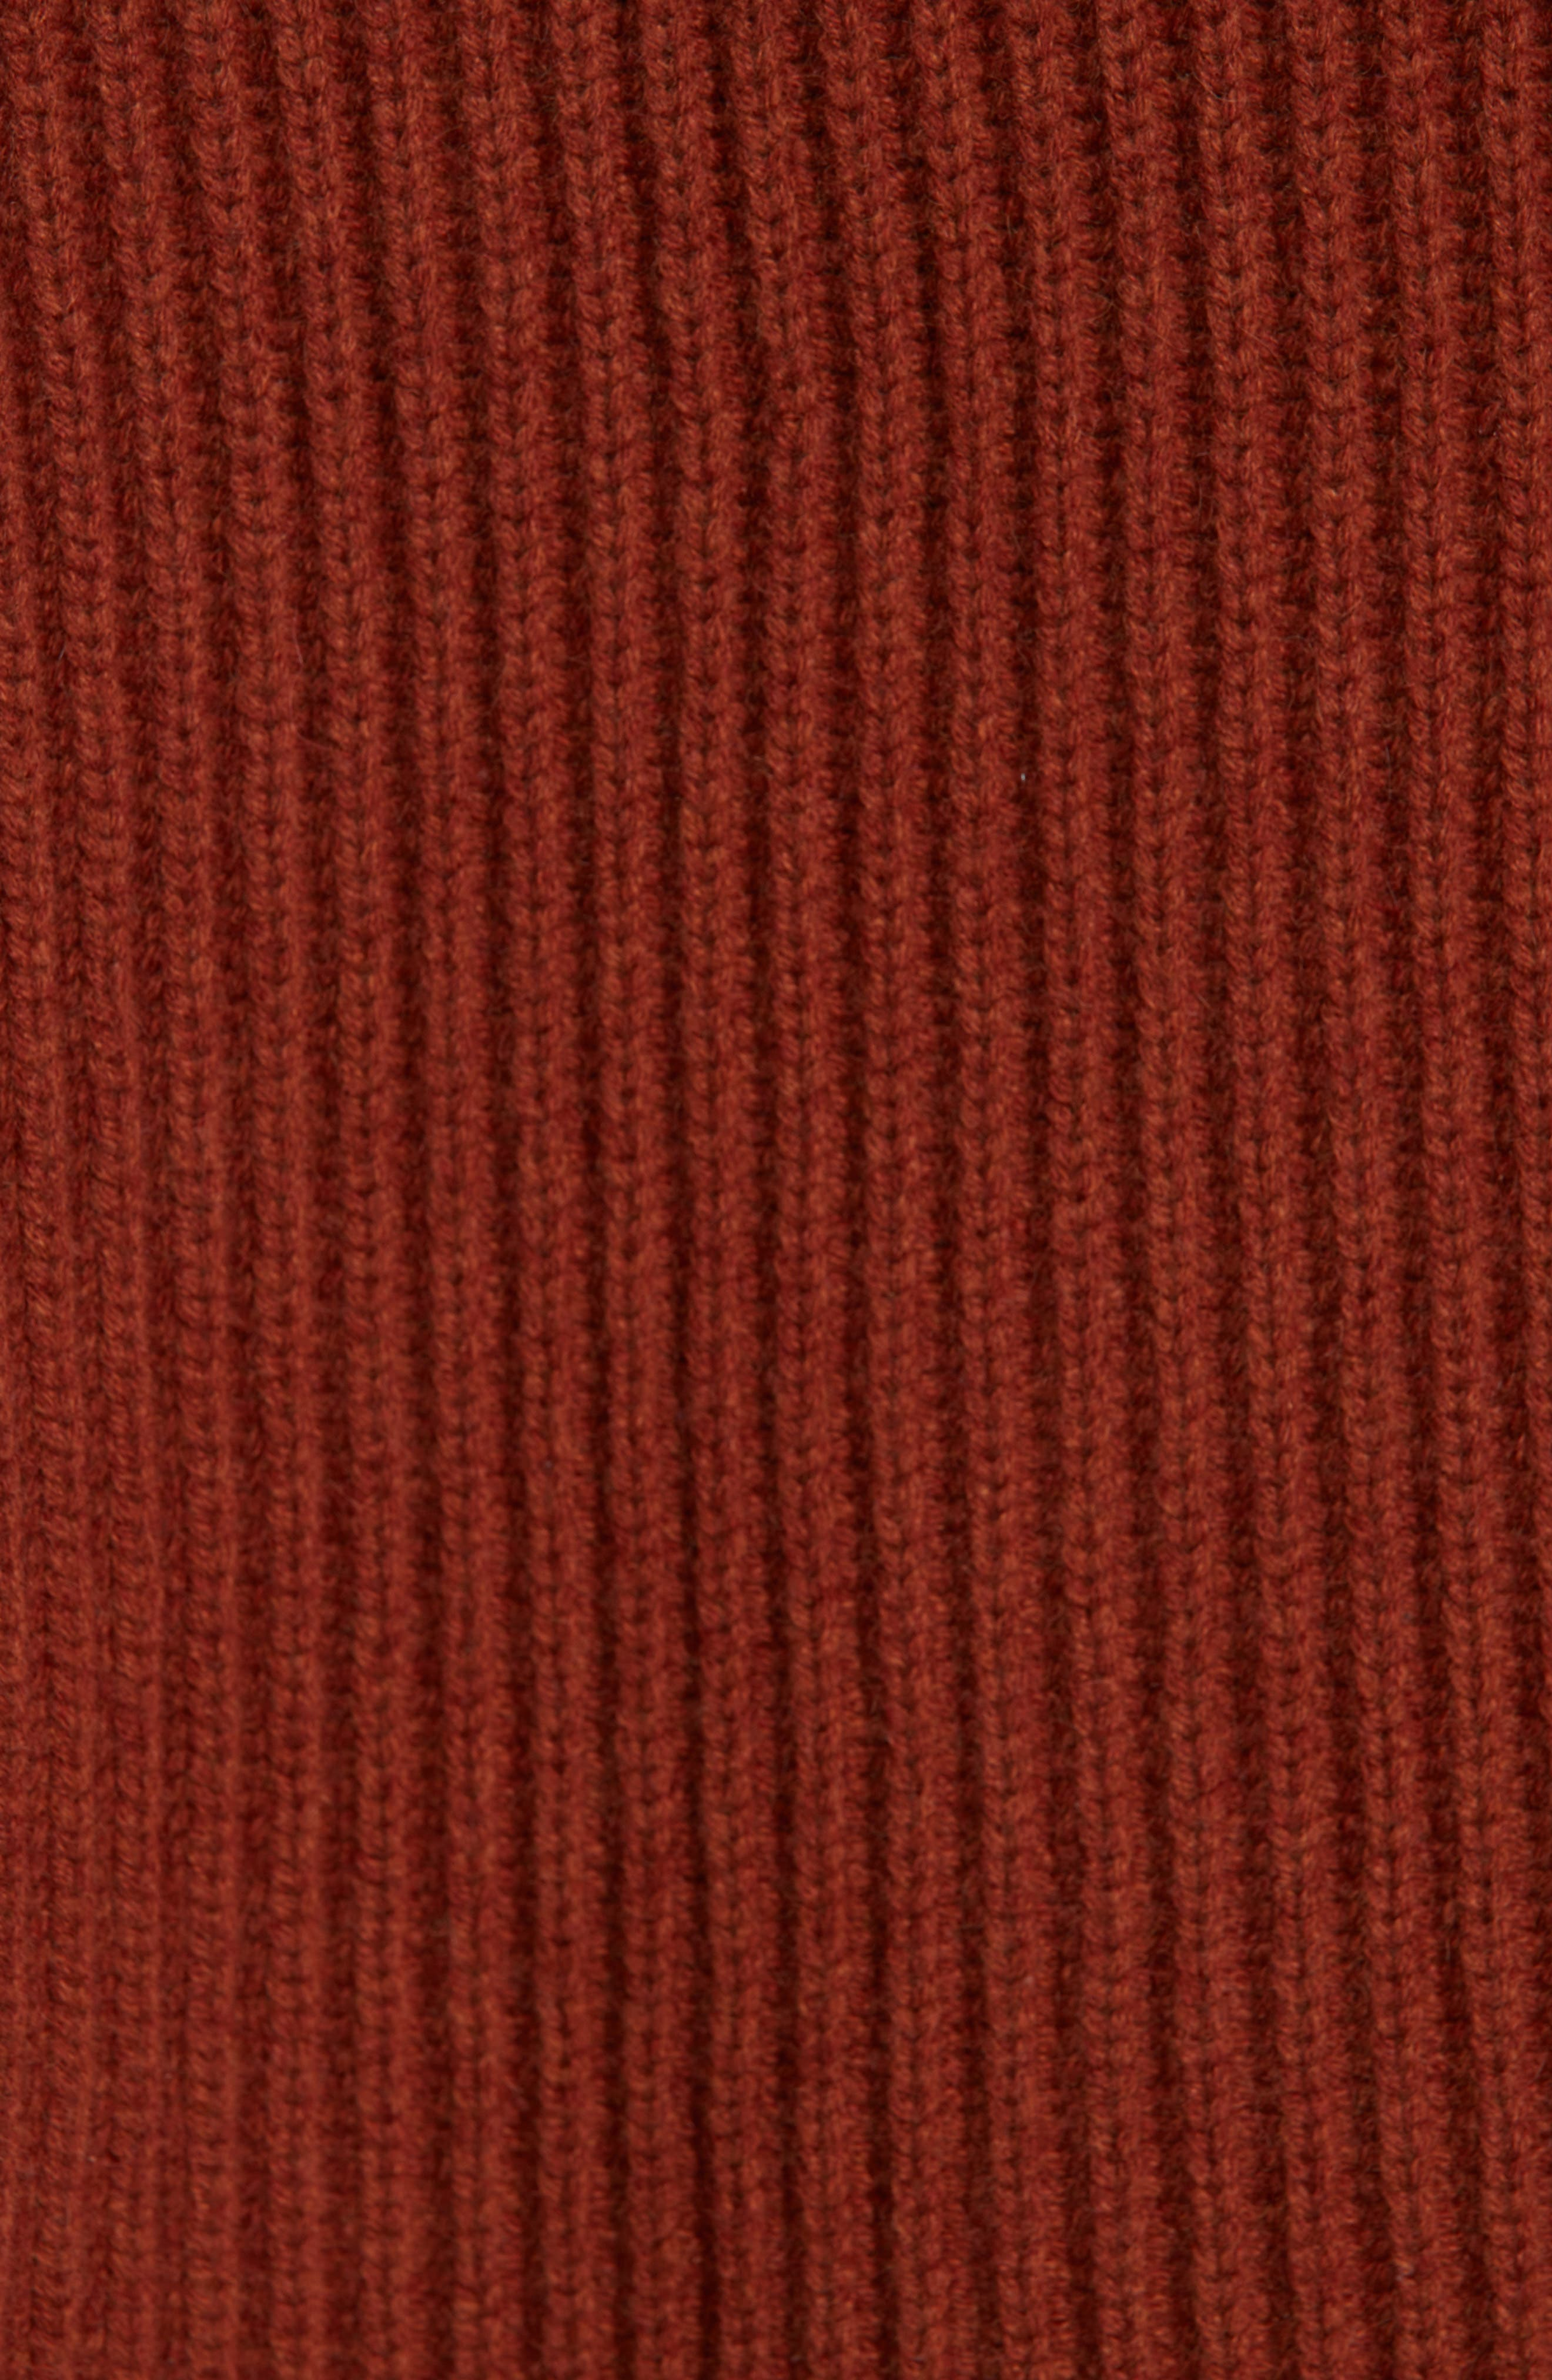 Ribbed Cashmere Turtleneck Sweater,                             Alternate thumbnail 5, color,                             221